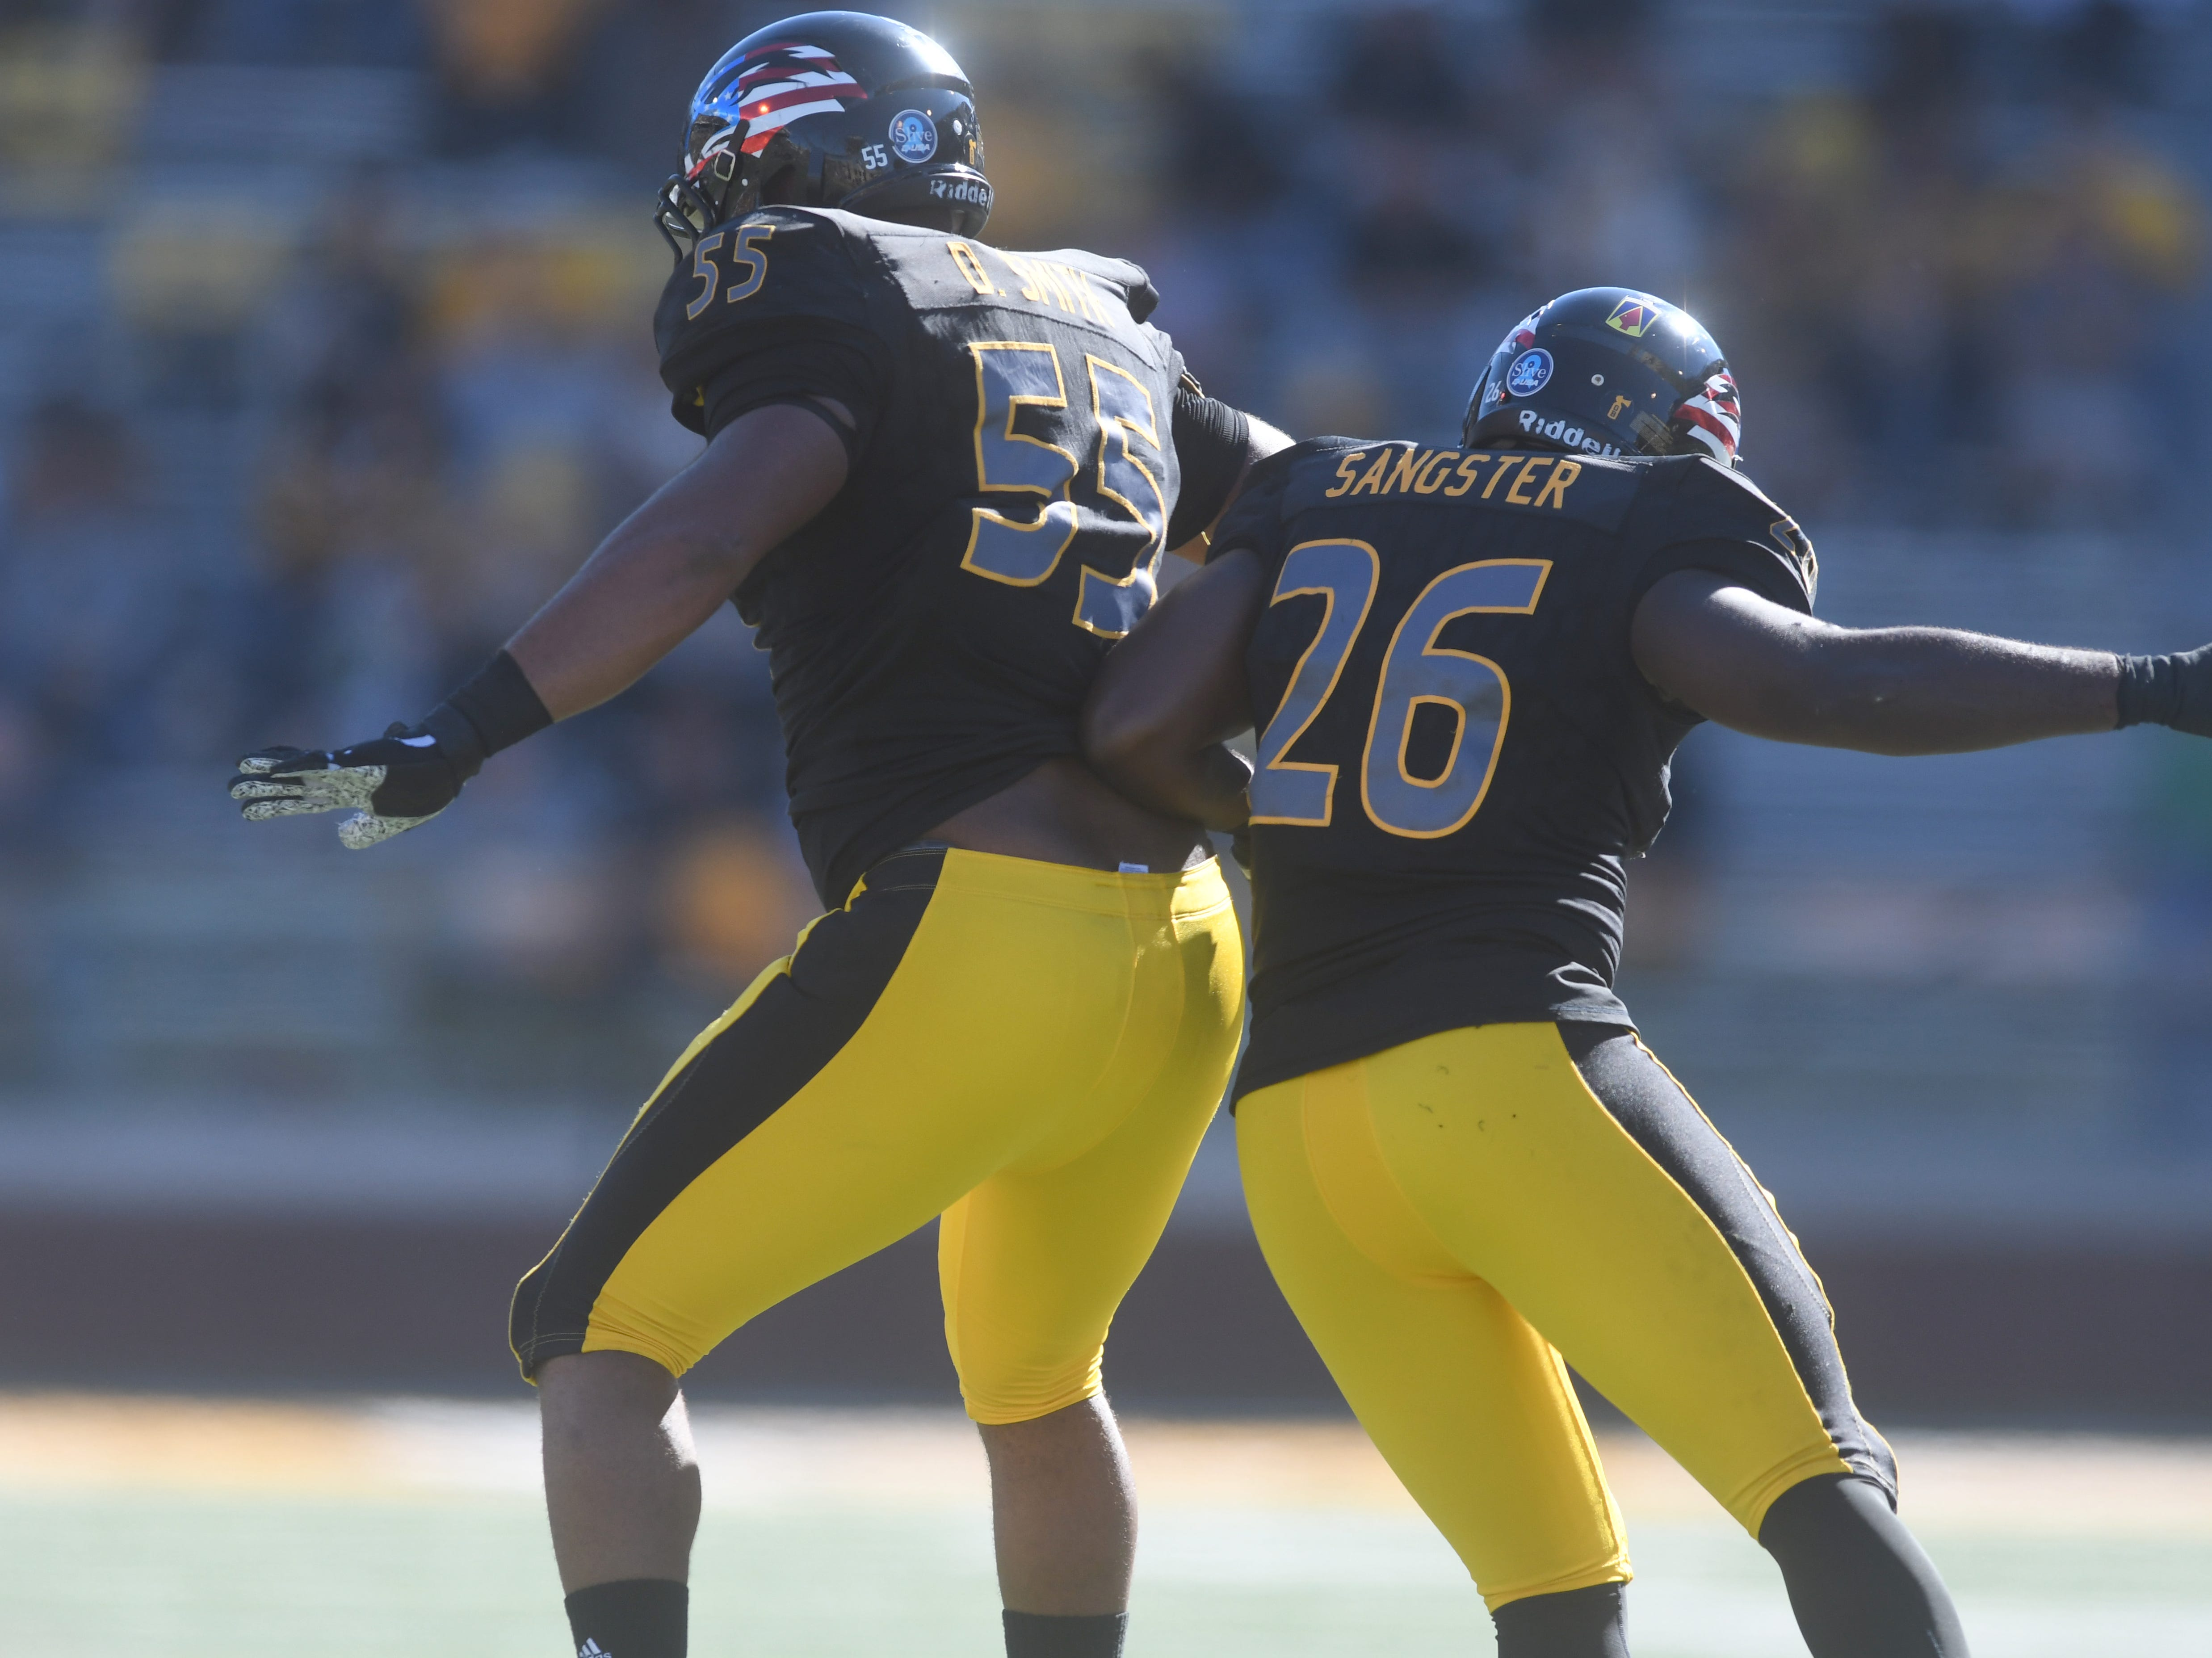 Southern Miss linemen Jeremy Sangster (26) and Demarrio Smith celebrate after a sopped play in a game against Marshall at M.M. Roberts Stadium on Saturday, November 3, 2018.